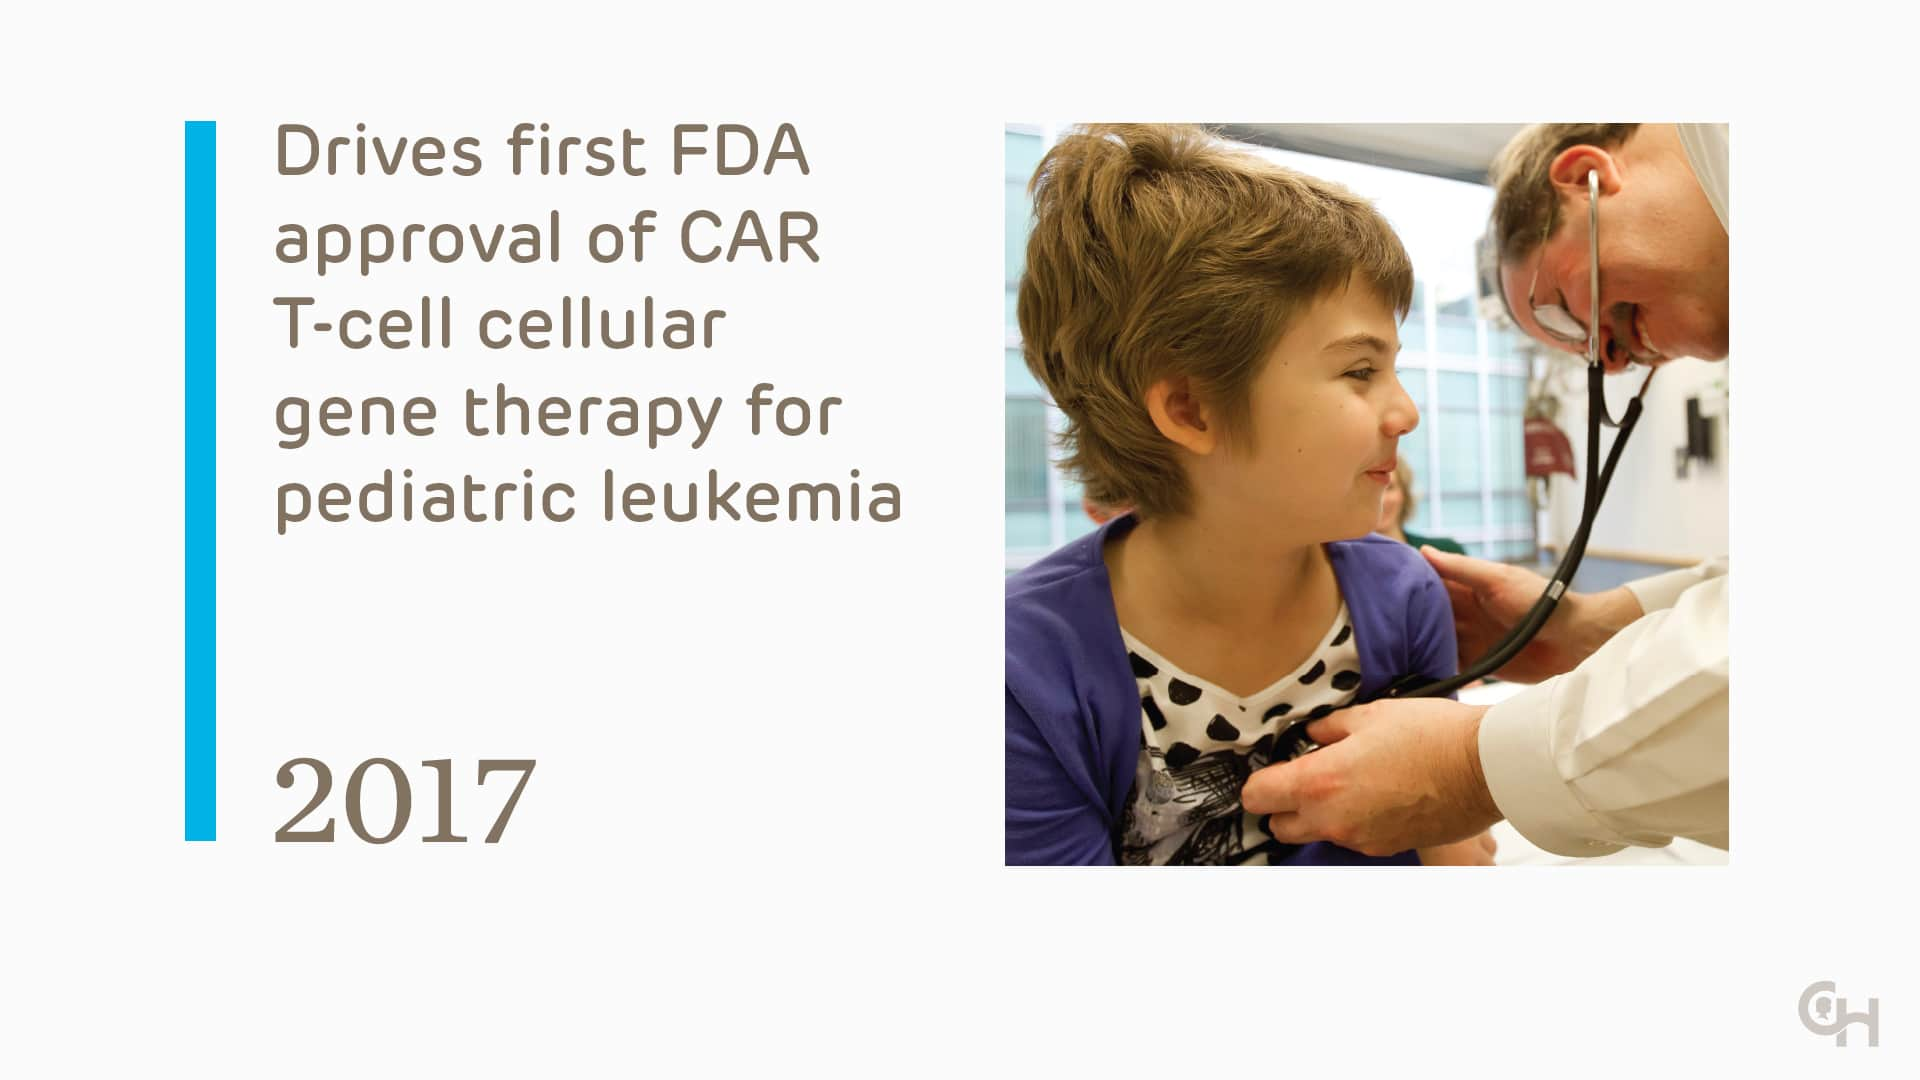 Drives first FDA approval of CAR T-cell cellular gene therapy for pediatric leukemia - 2017